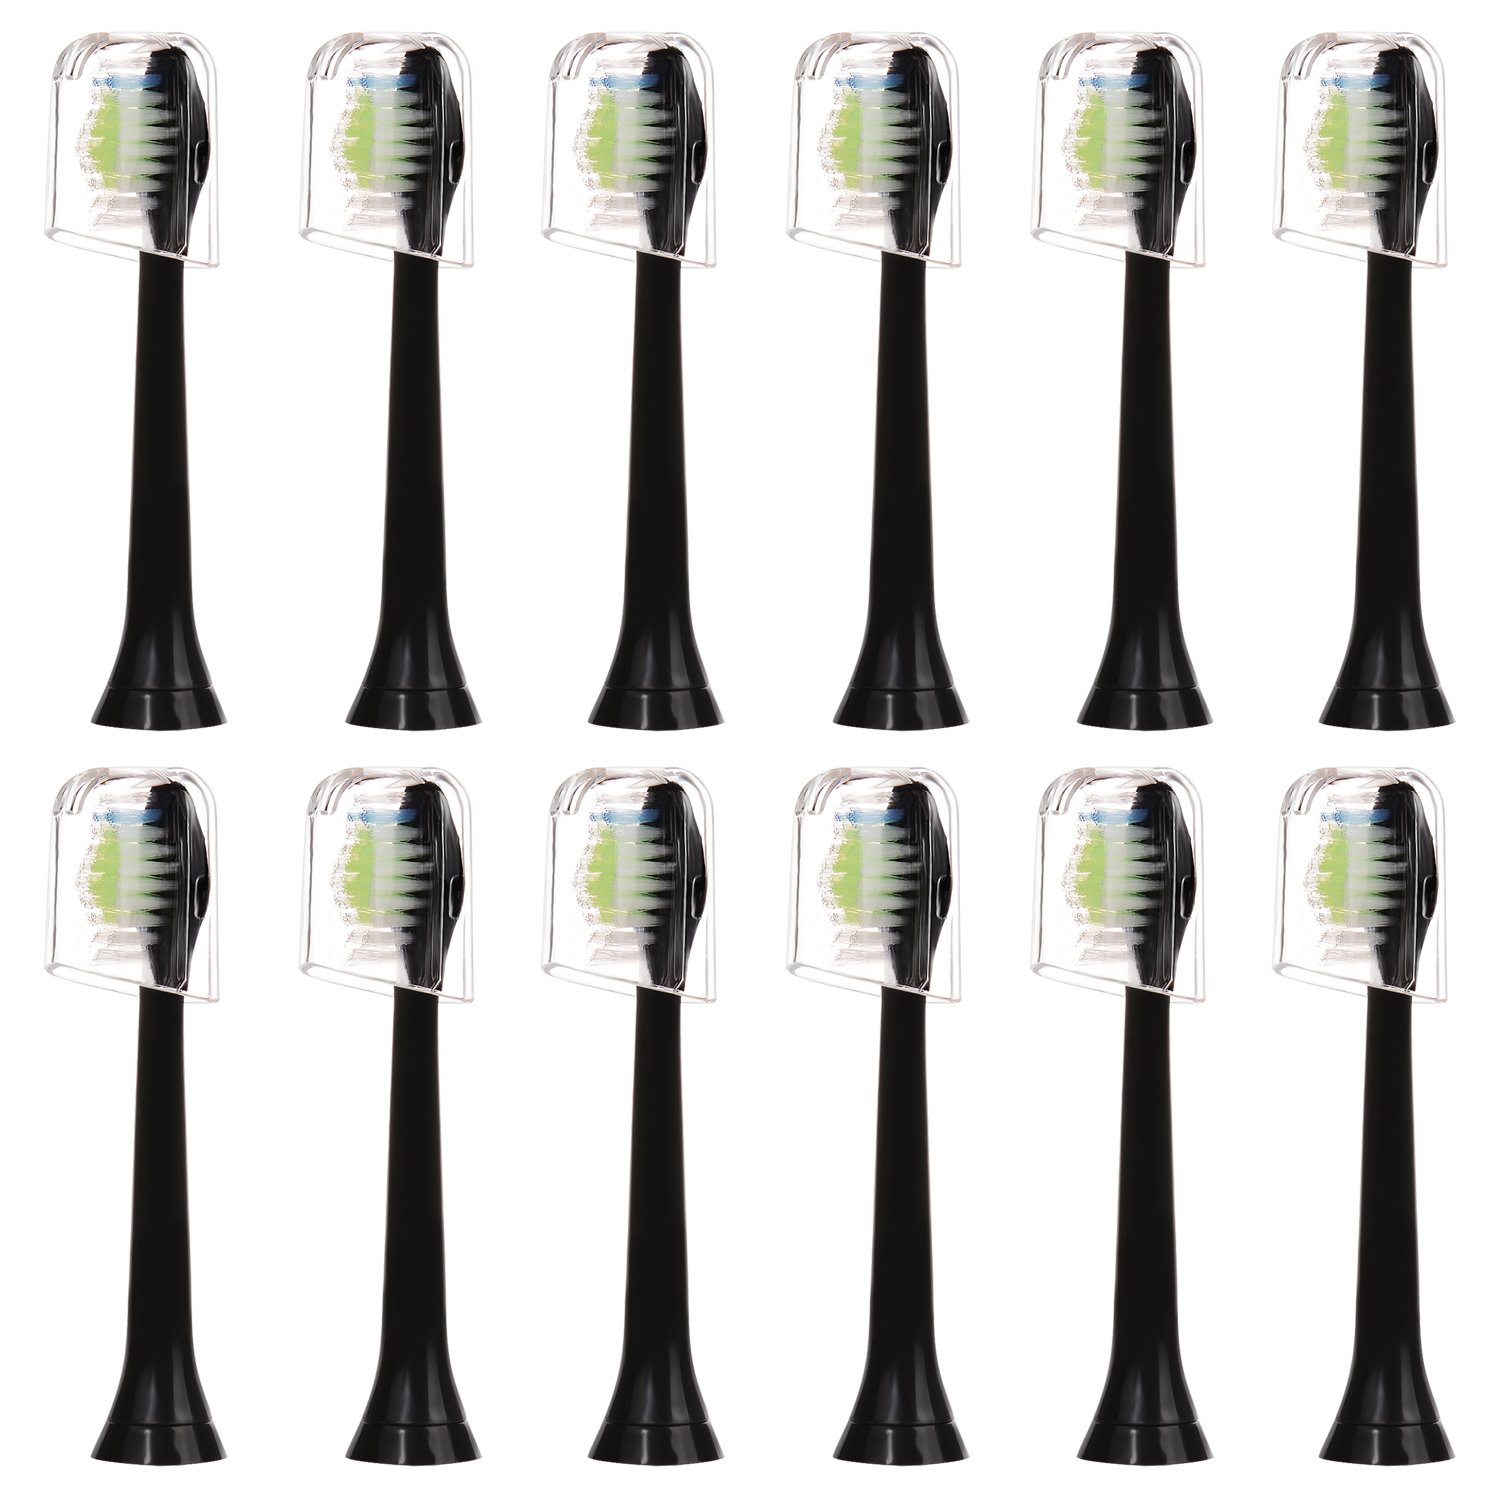 12 pcs (3x4) E-Cron® Toothbrush heads With Hygienic Travel Caps. Compatible Replacement Heads with Philips Sonicare DiamondClean Black.